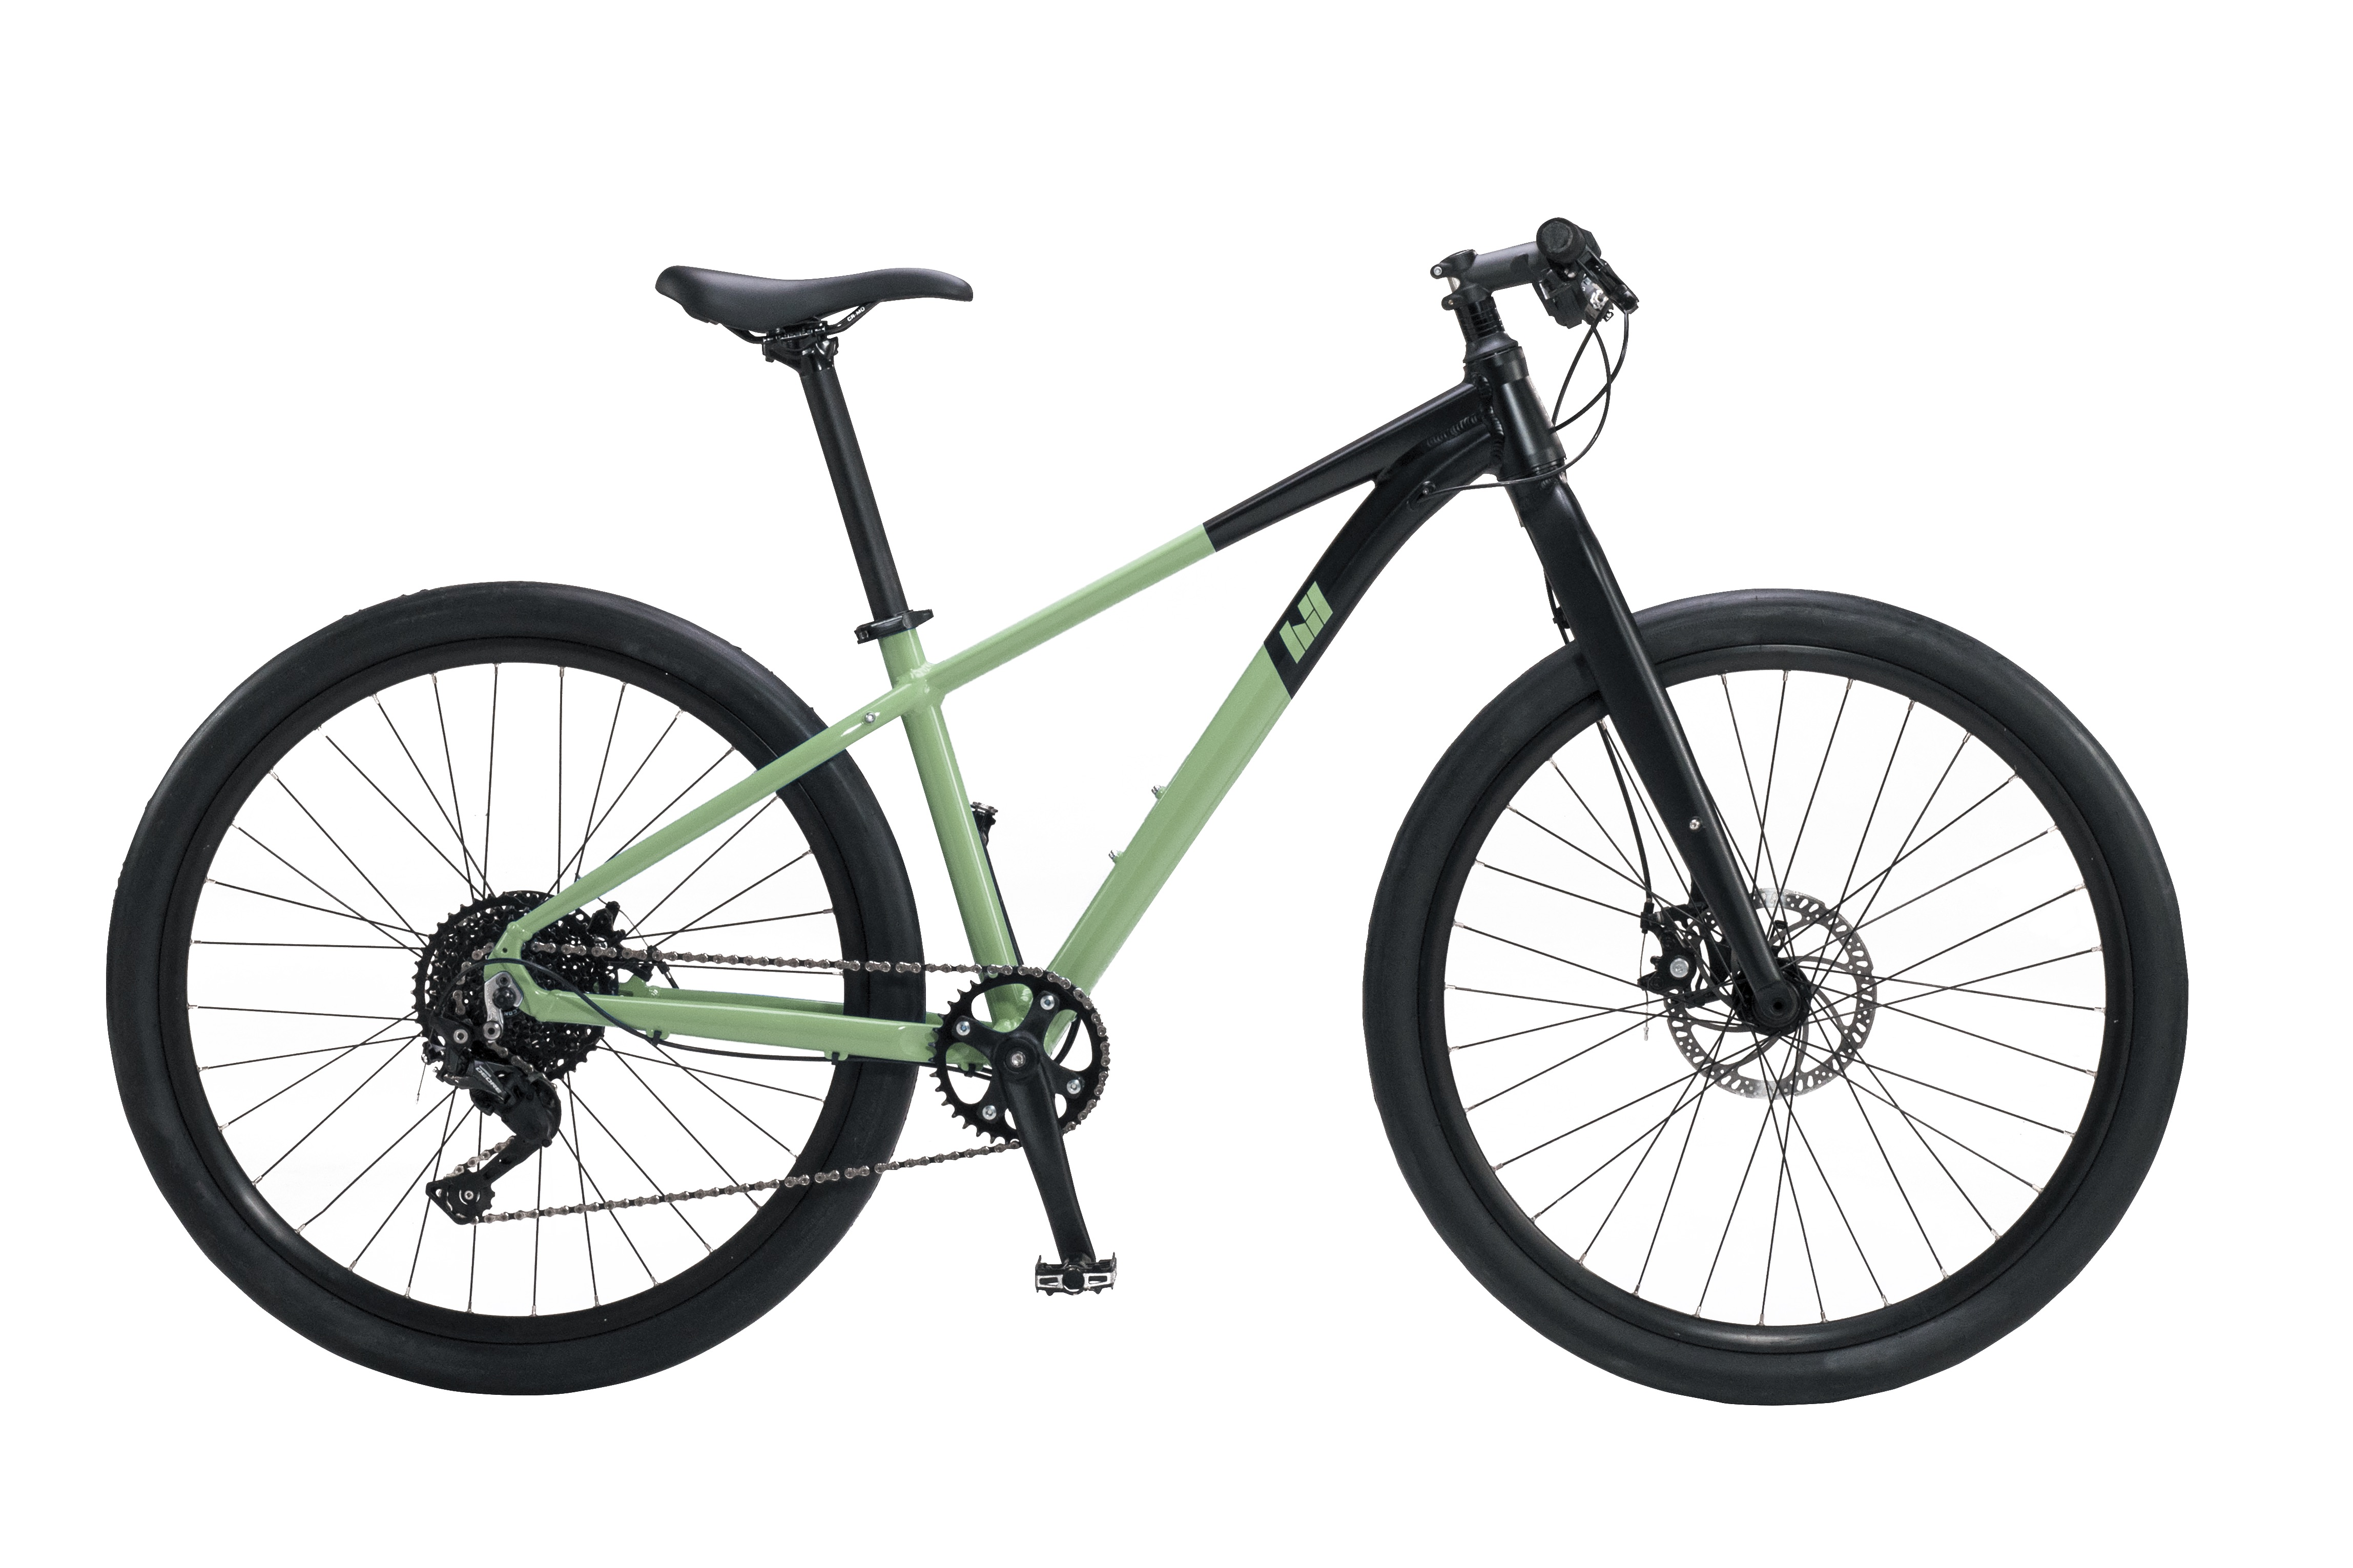 //bikeis.life/wp-content/uploads/2019/03/products_bike_002_green.jpg